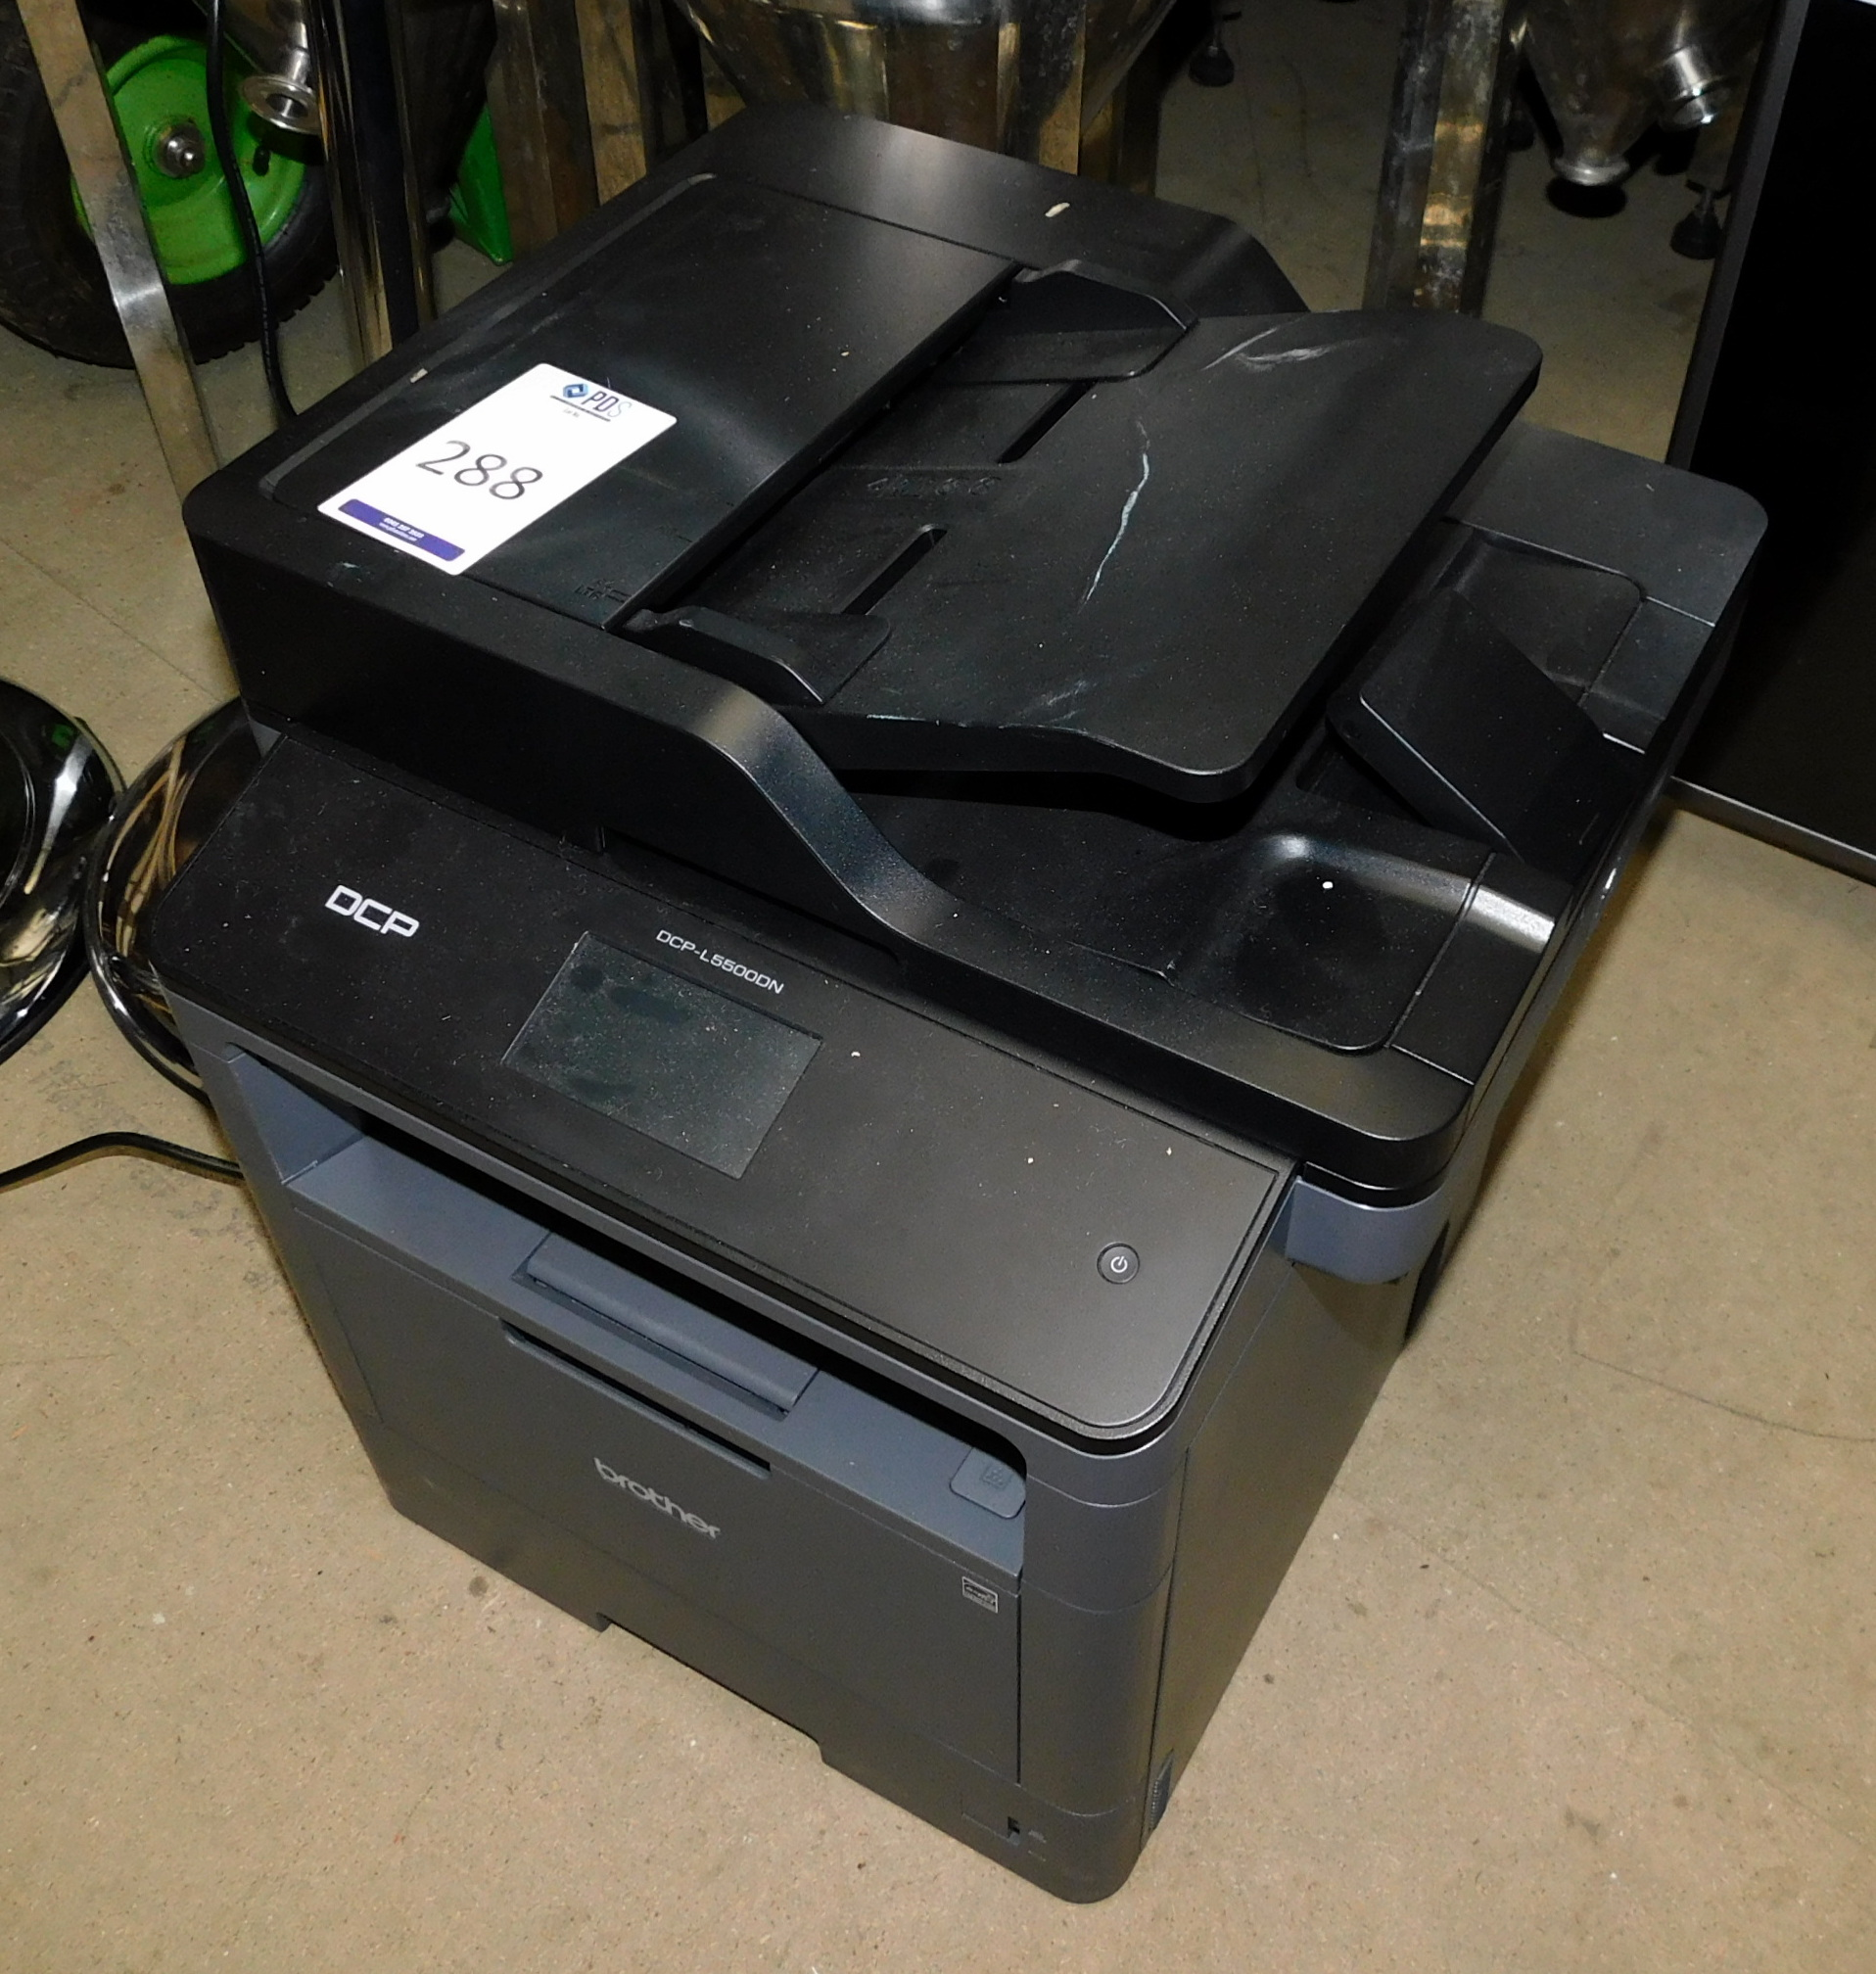 Los 288 - Brother DCP-L5500DN Multi Function Printer (Located Upminster – See General Notes for Full Address)